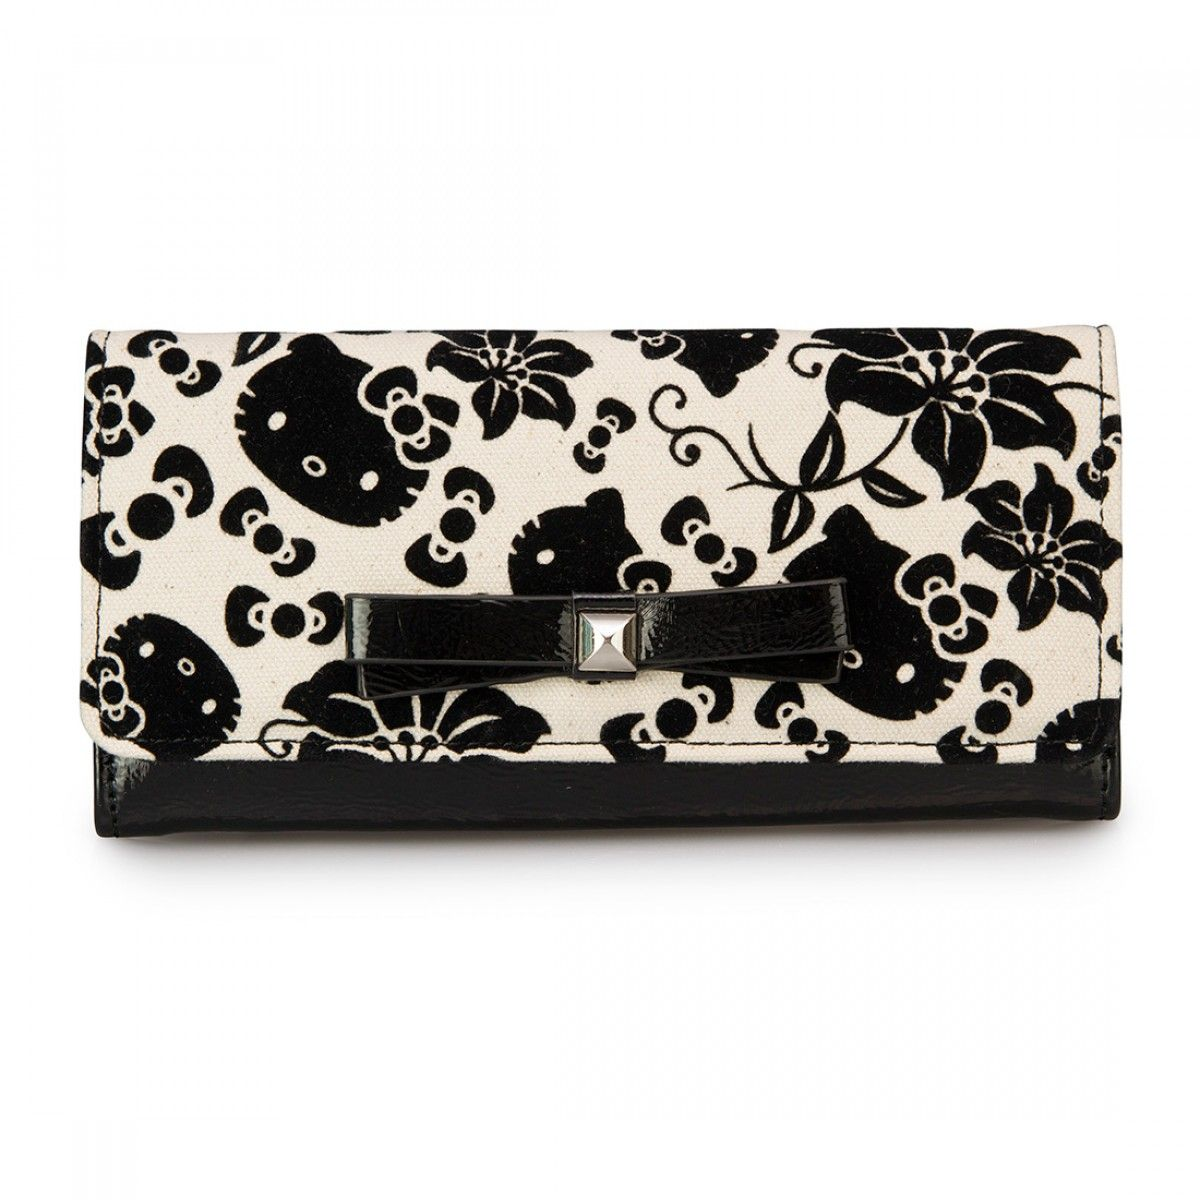 Hello Kitty Black/Cream Floral Wallet - Wallets